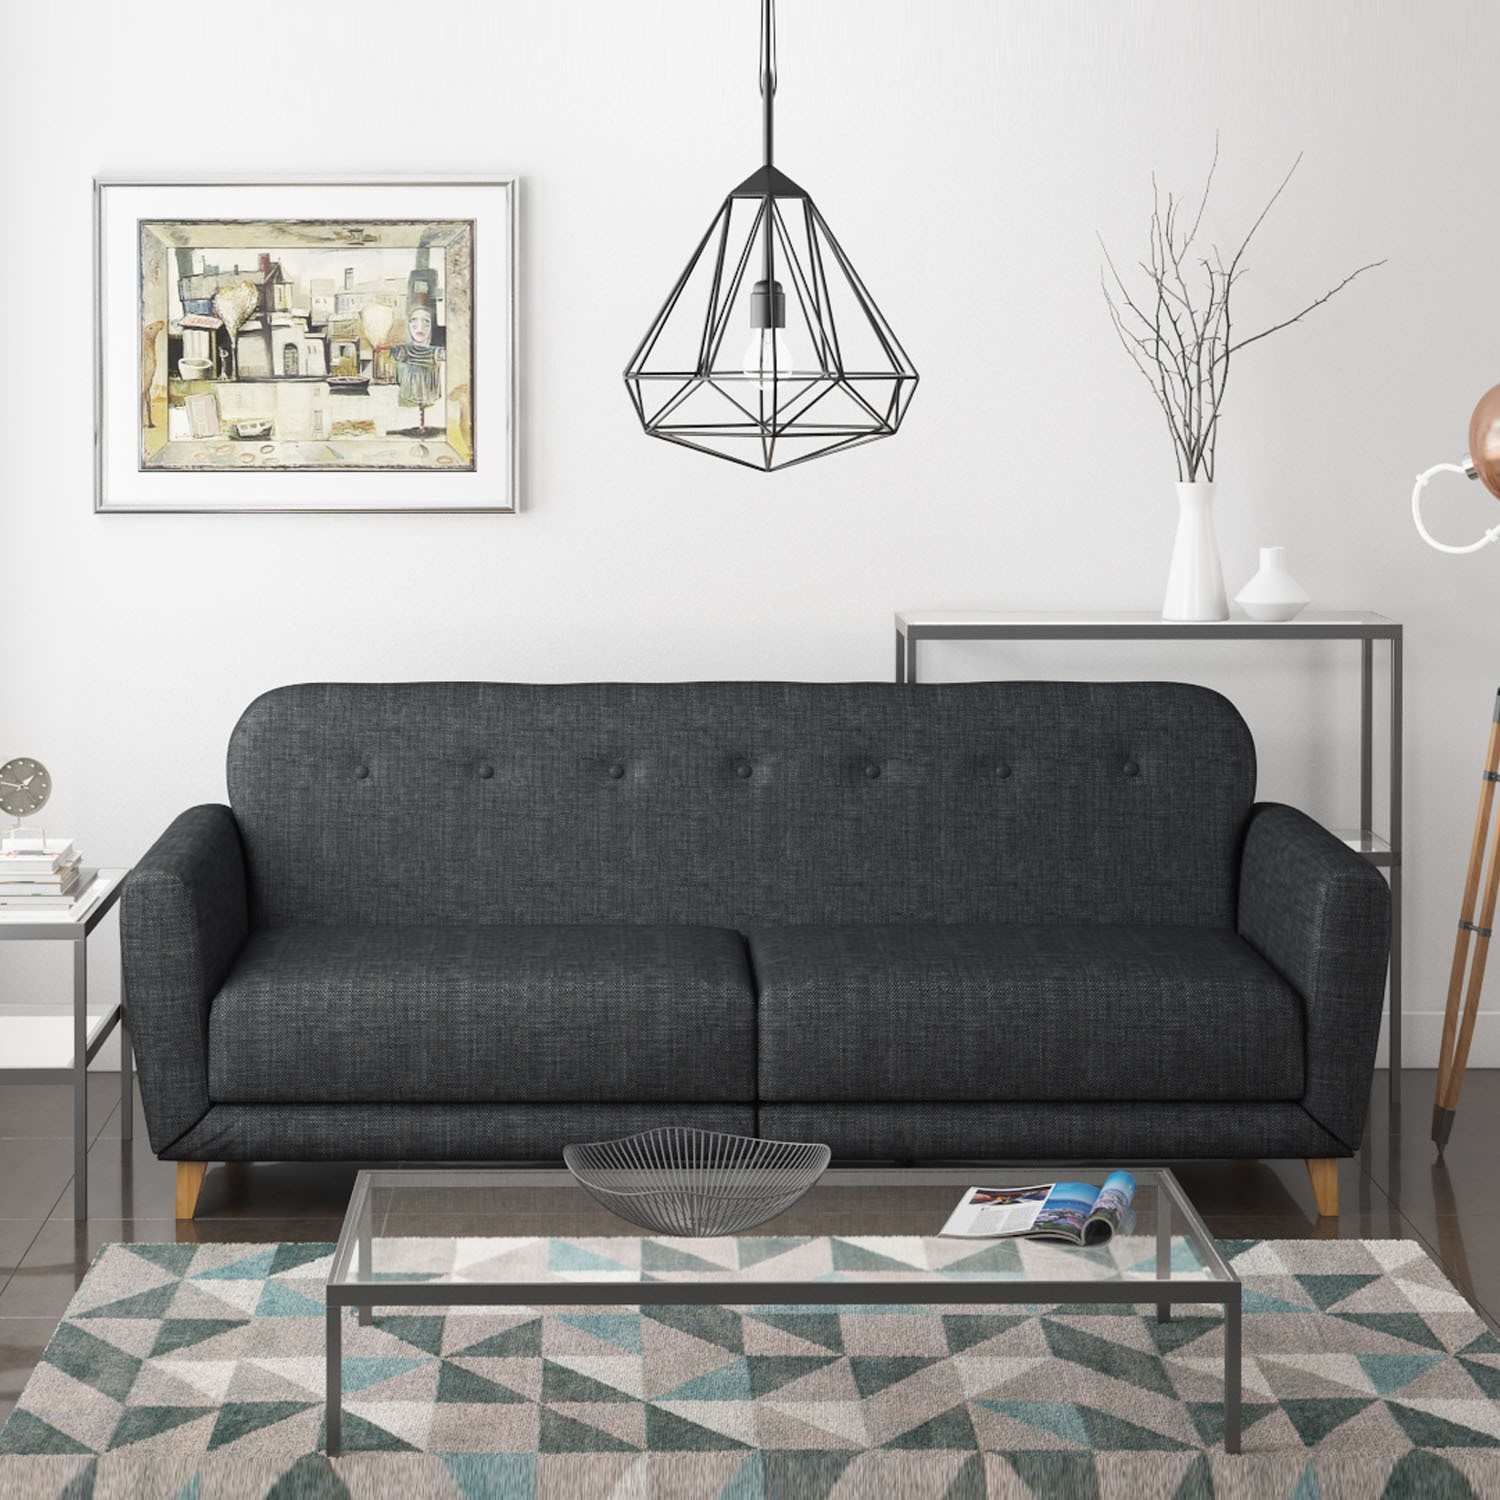 Archer 3 Seater Fabric Sofa Bed In Charcoal/Dark Grey